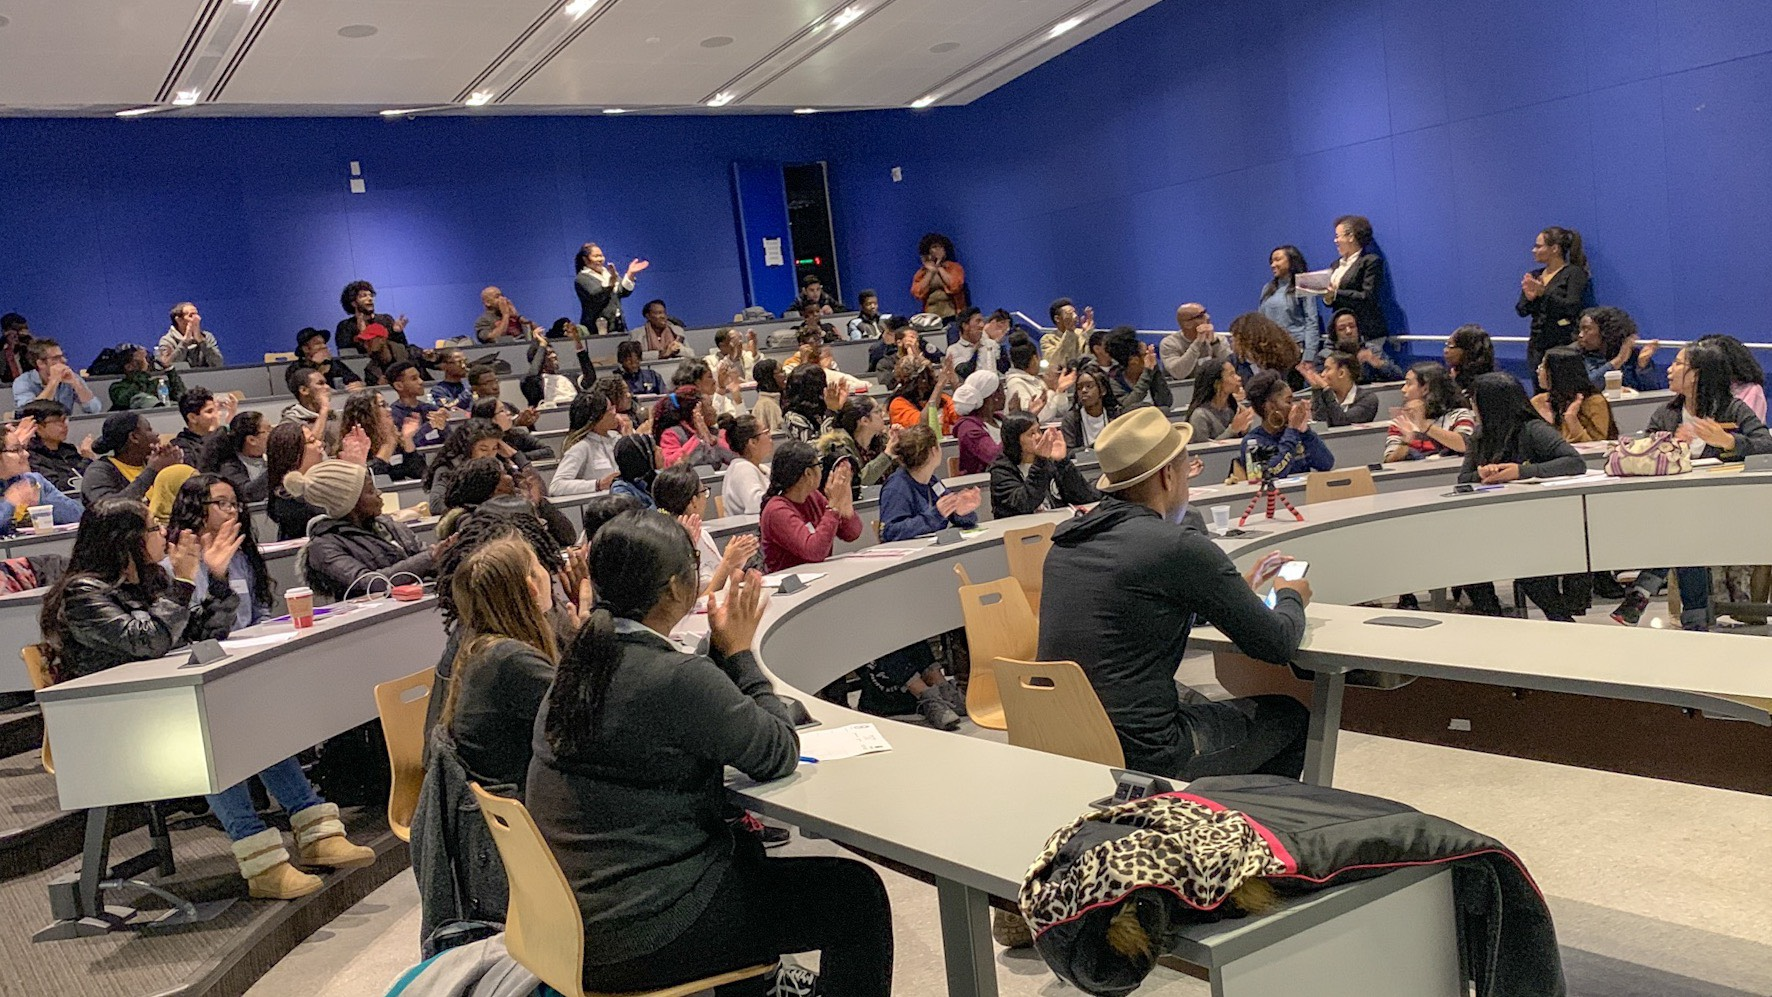 Students from the NYC Urban Ambassadors and NYC Great! programs participate in the Mental Health and Wellness Careers panel at John Jay College, November 10, 2018